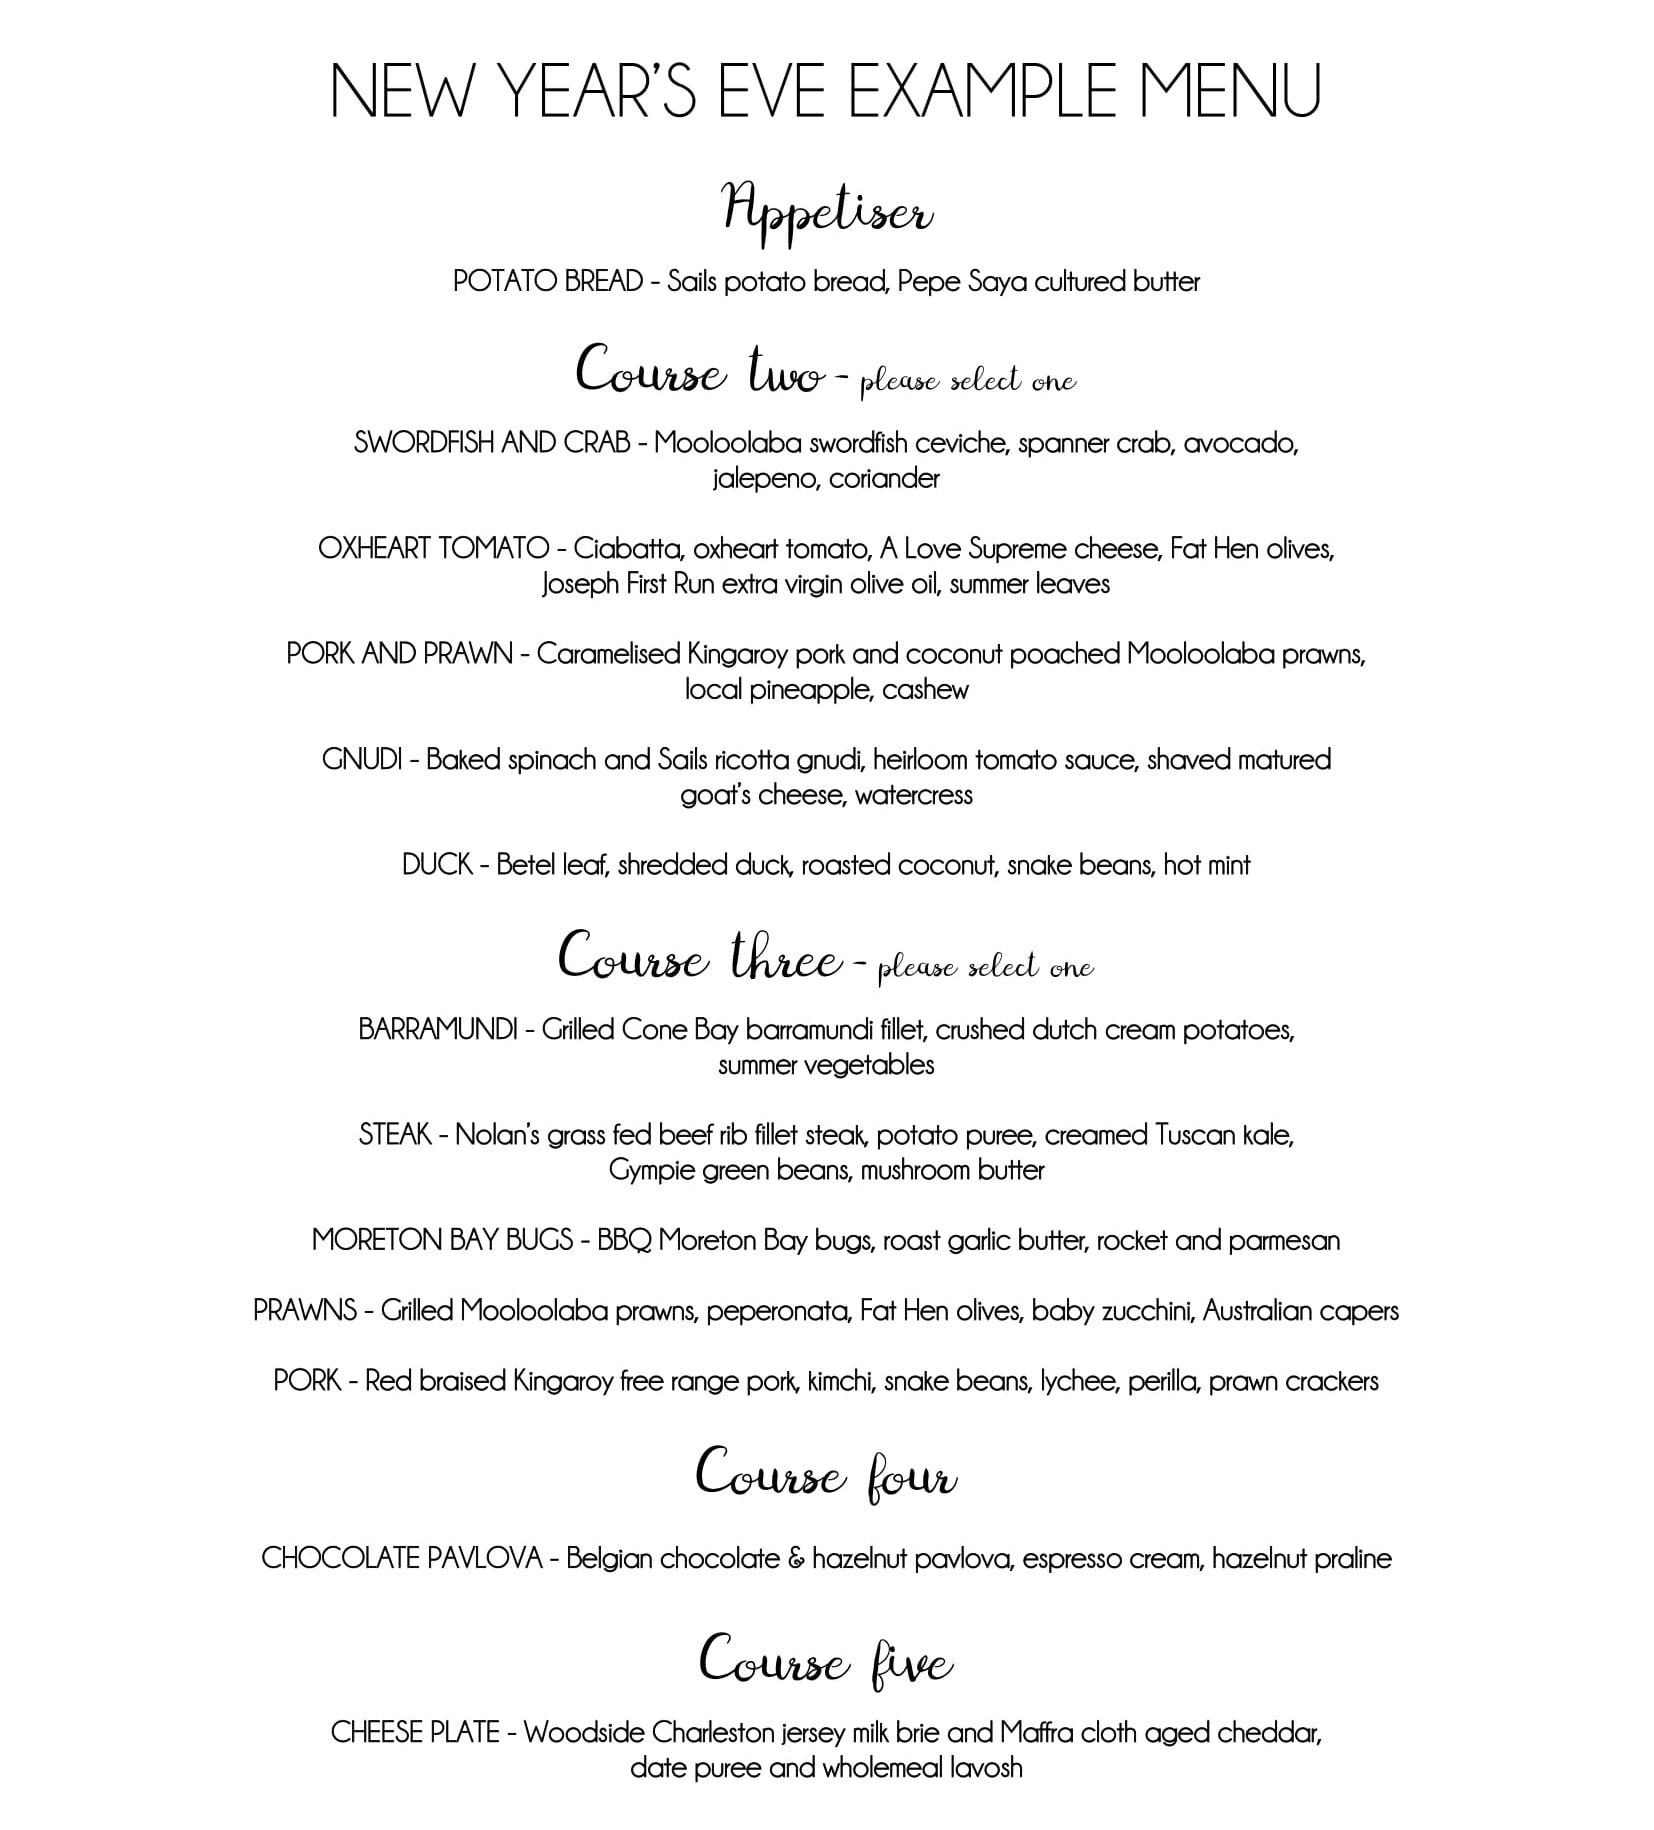 New Years Example Menu-1